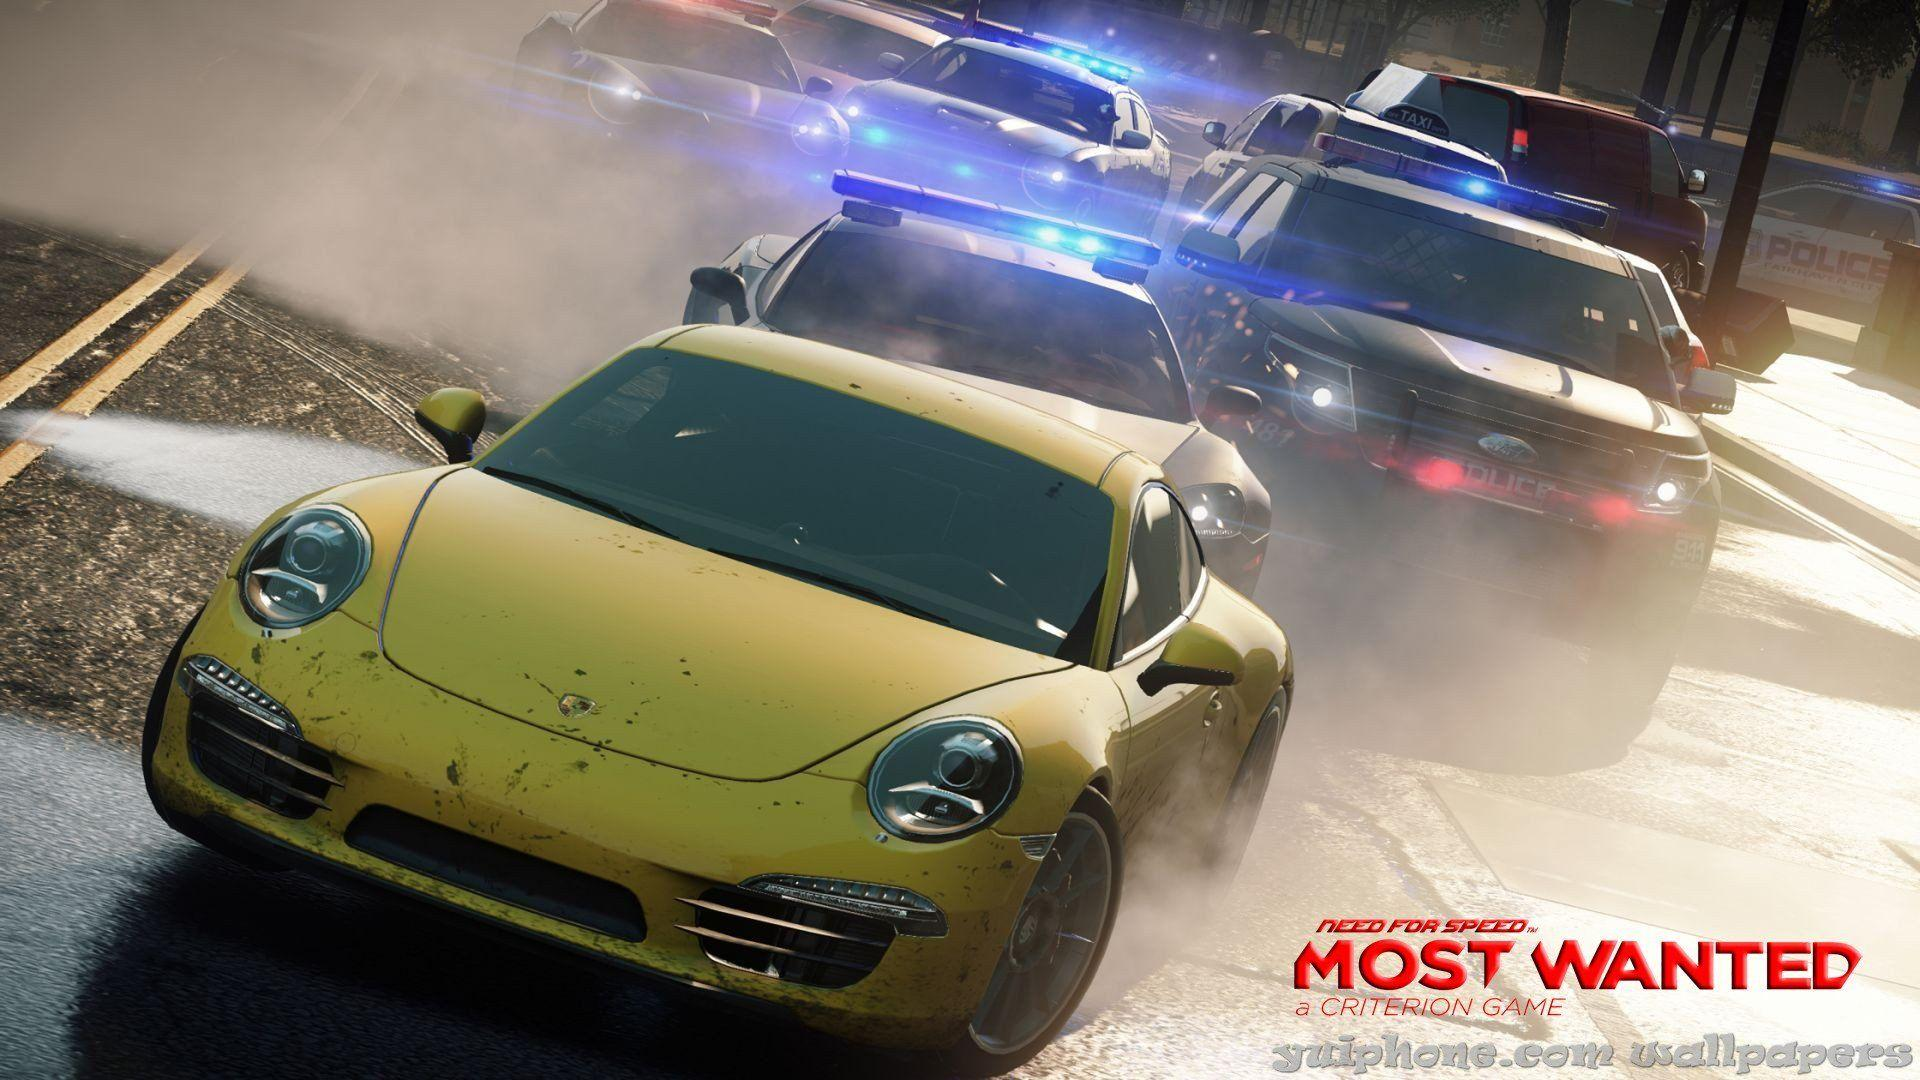 Need For Speed Most Wanted A Criterion Game 443762 - WallDevil